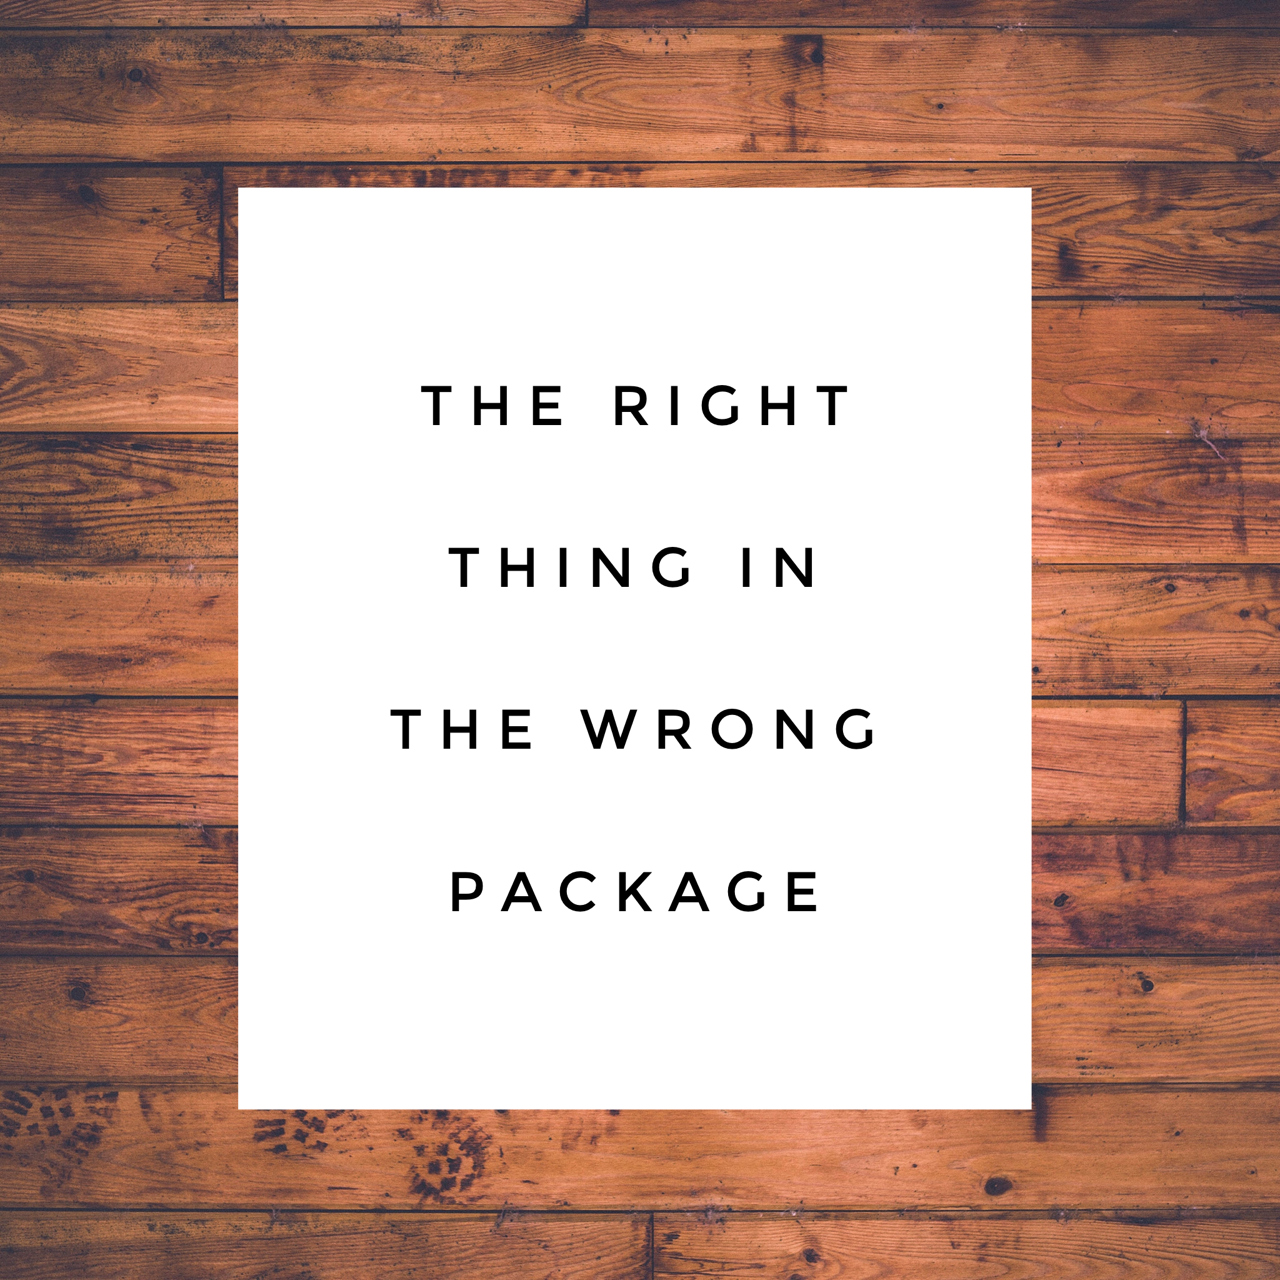 The Right Thing in the Wrong Package